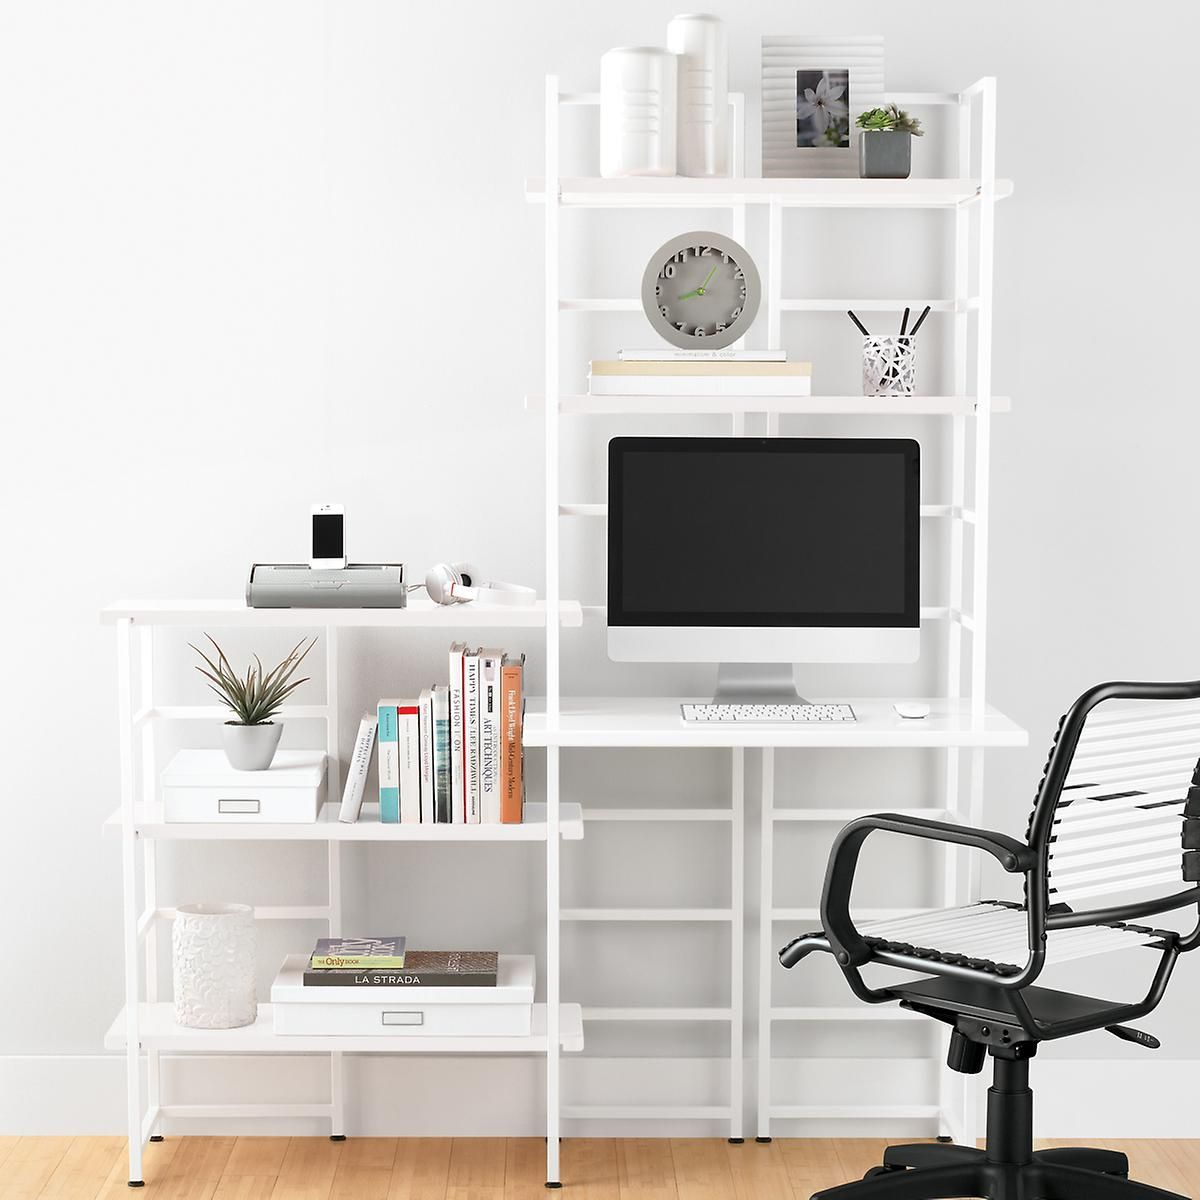 Our Connections Shelving system is inspired by the elegantly simple lines of traditional Asian design.  Simply combine Connections Uprights with Connections Shelves to create a solution that suits your needs.  From the home office to the den, this system offers easy, convenient storage anywhere you need it.  Assembly is a cinch - the shelves feature grooves which fit onto the uprights.